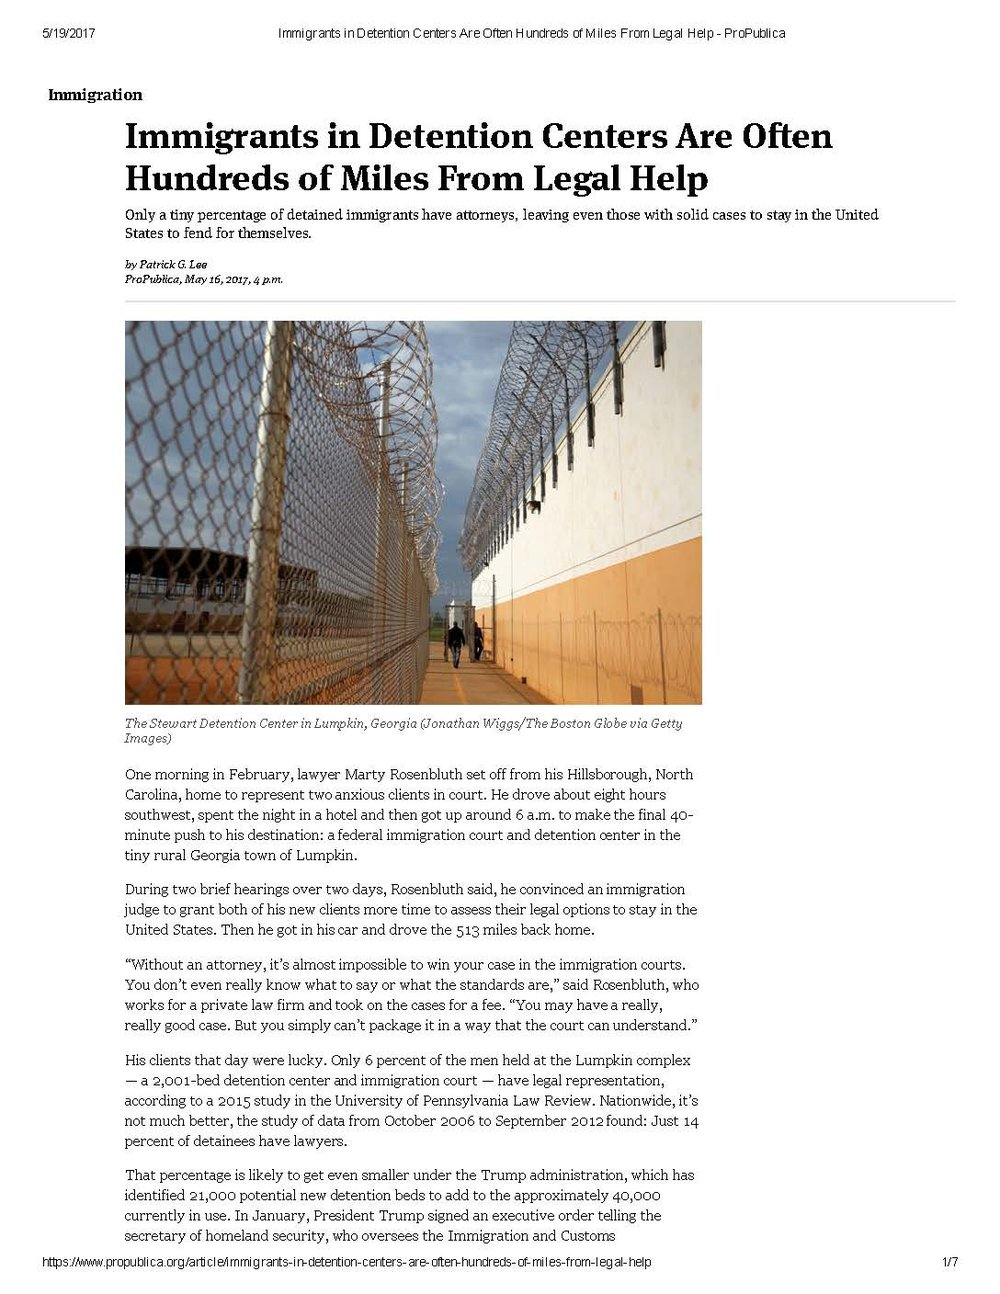 2017.05.15 Immigrants in Detention Centers Are Often Hundreds of Miles From Legal Help - ProPublica_Page_1.jpg